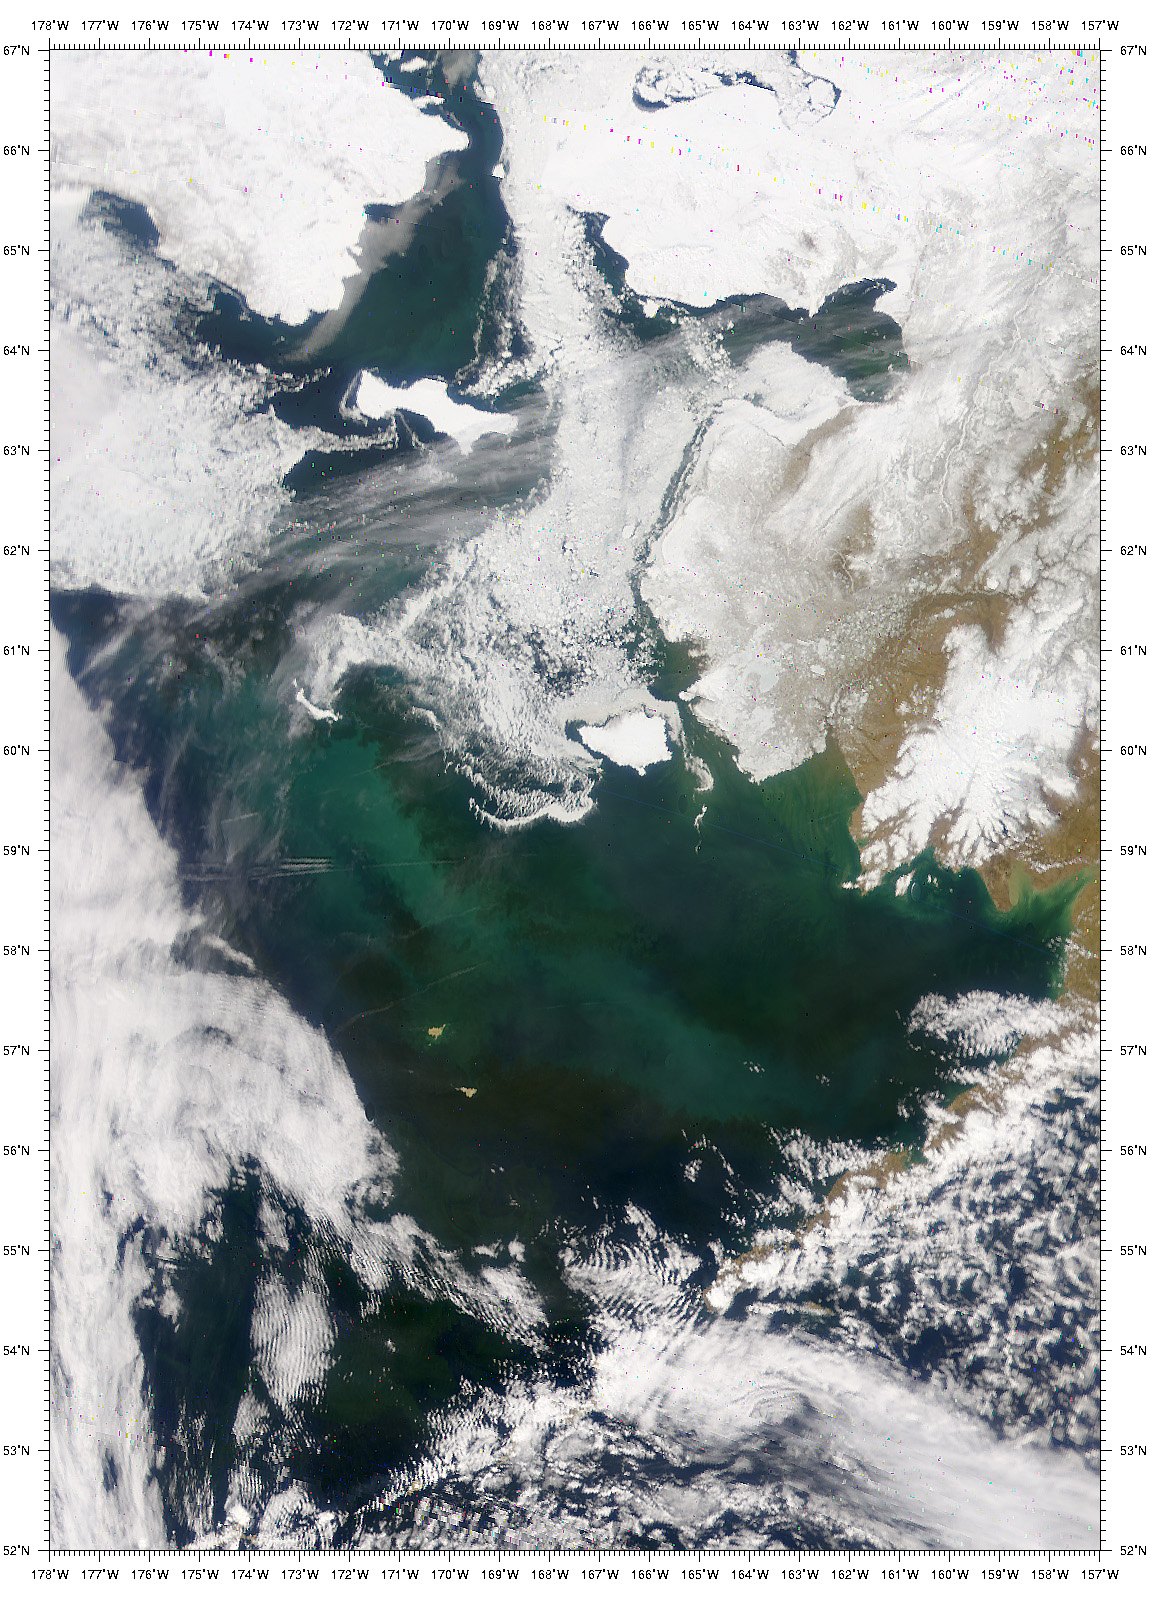 Swirls of Color in the Bering Sea